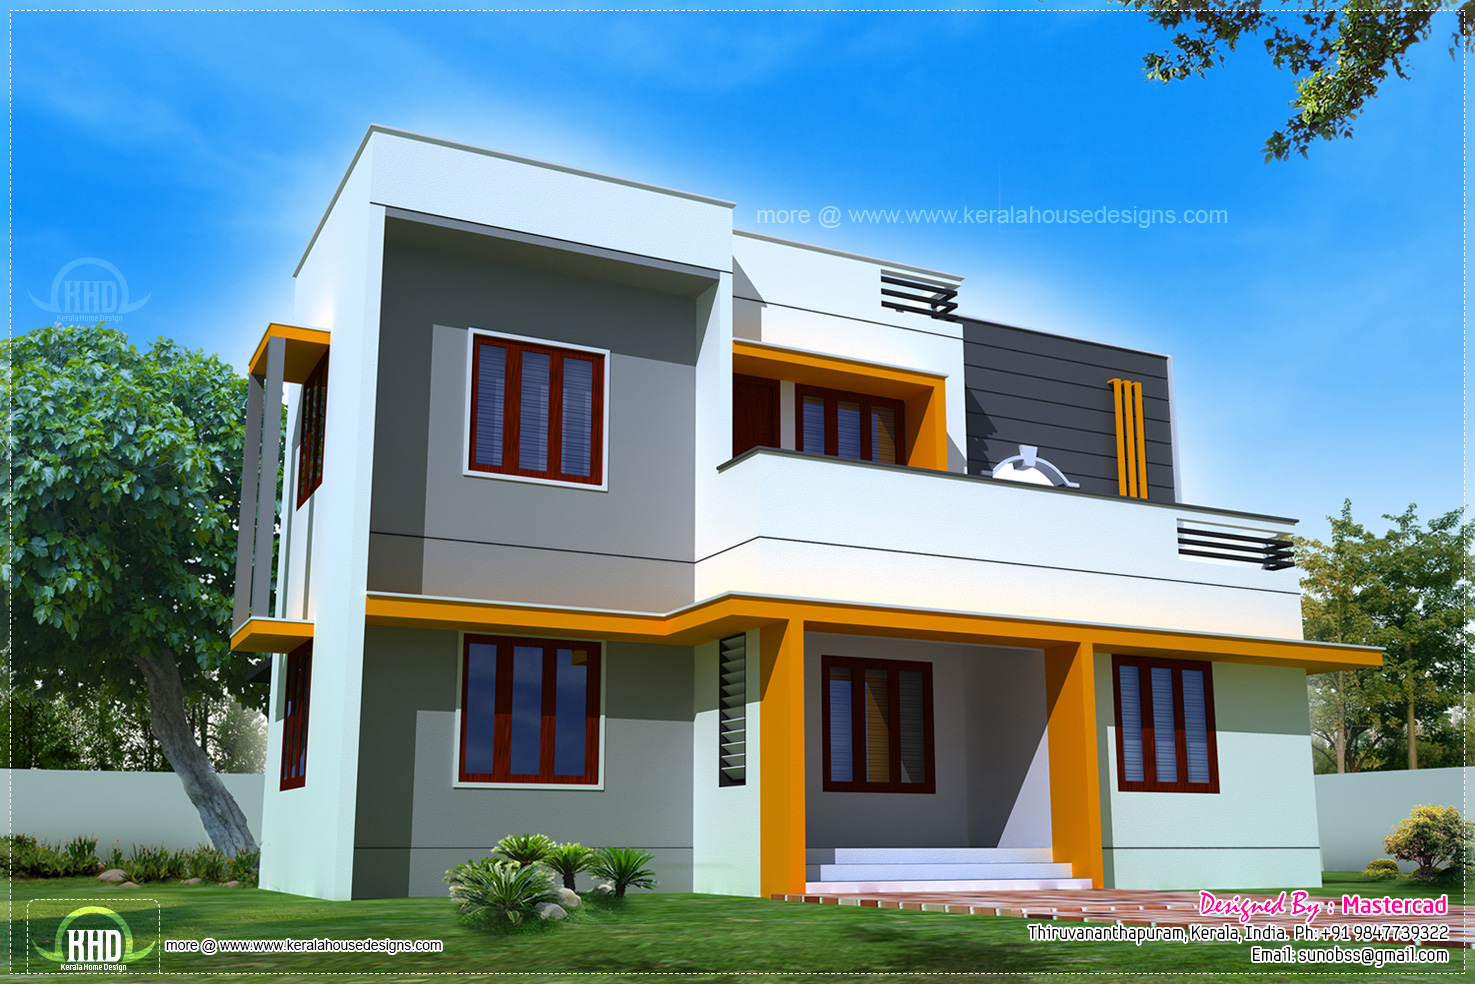 1400 modern contemporary home exterior kerala for Kerala modern house designs